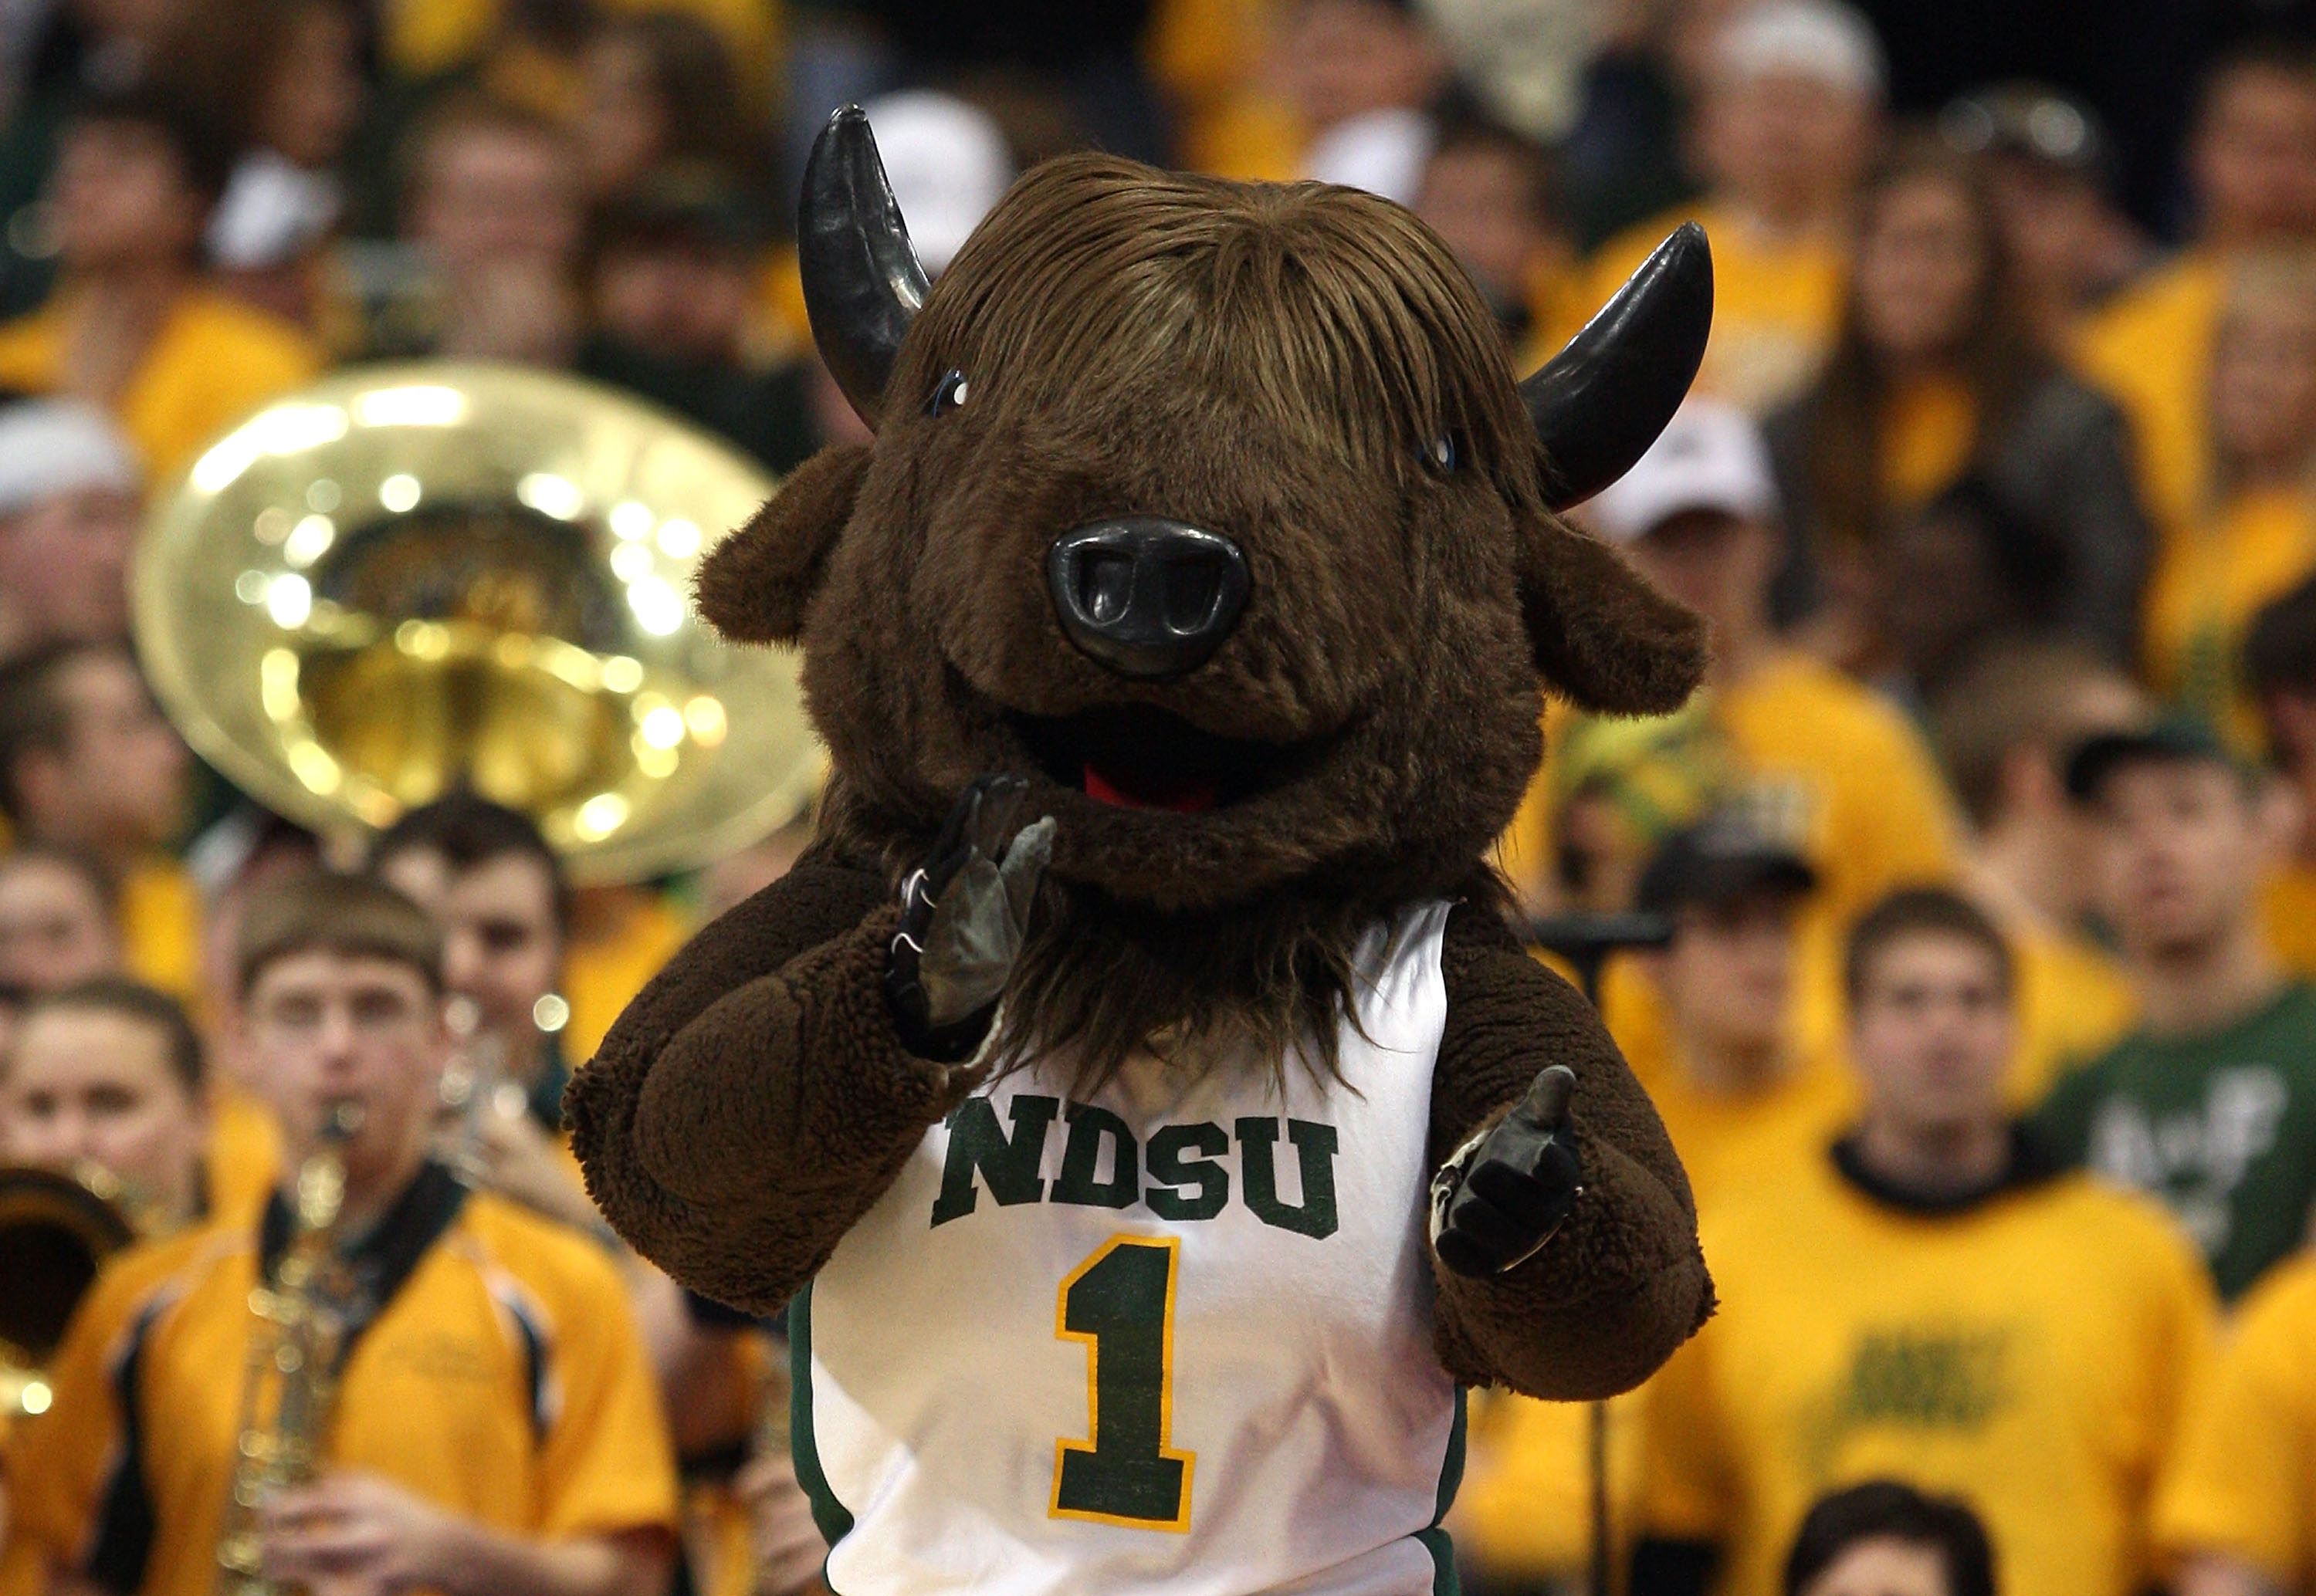 MINNEAPOLIS - MARCH 20:   Thundar, the mascot of the North Dakota State Bison, performs against the Kansas Jayhawks during the first round of the NCAA Division I Men's Basketball Tournament at the Hubert H. Humphrey Metrodome on March 20, 2009 in Minneapo